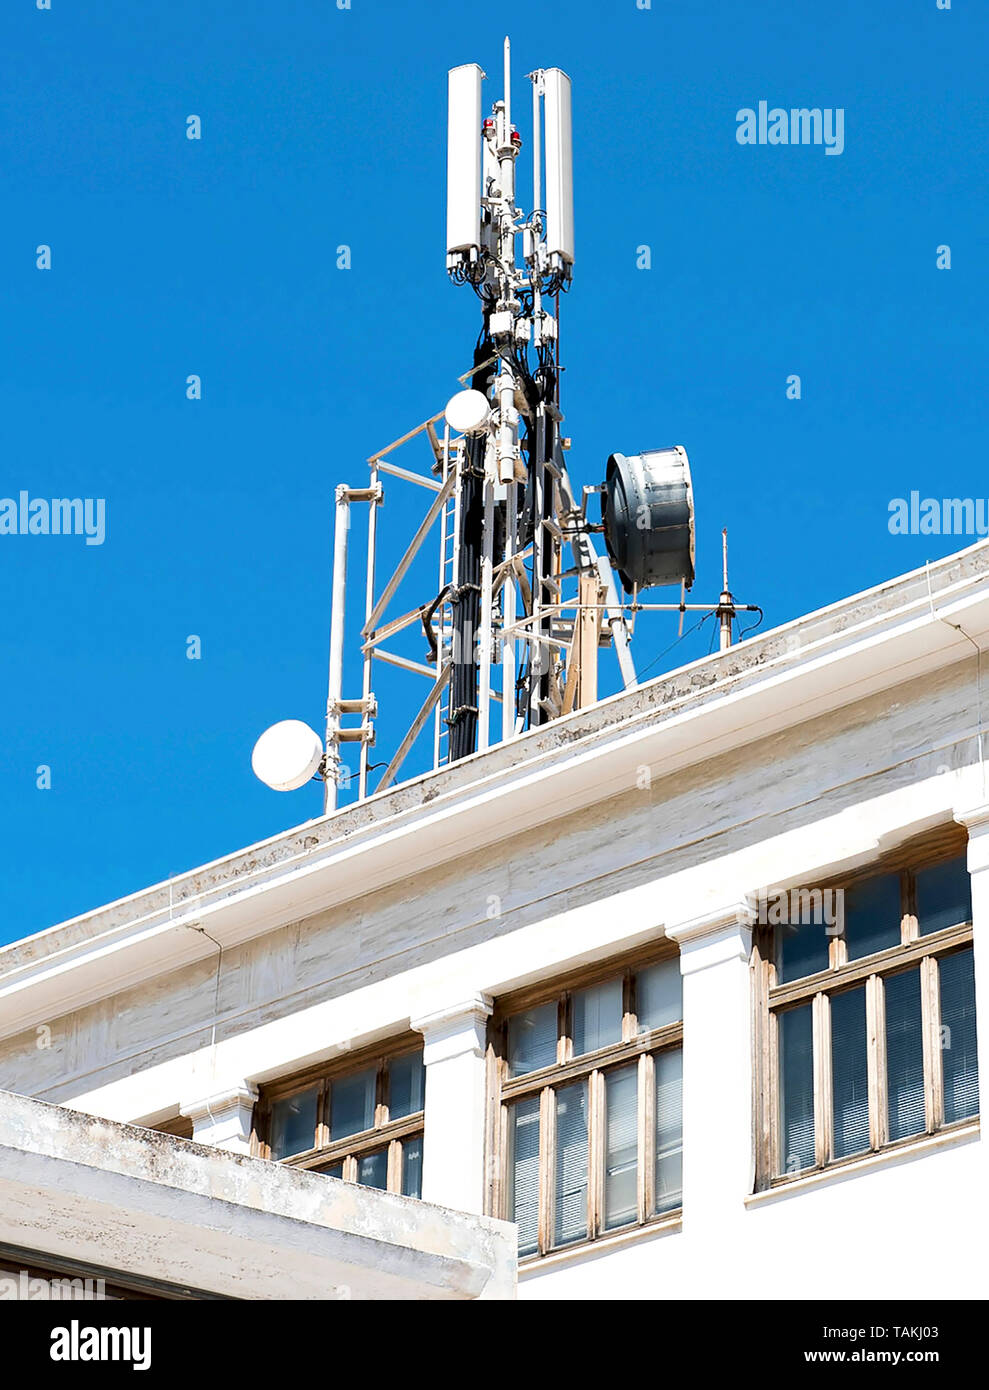 Cell phone telecommunications antennas and repeaters on building